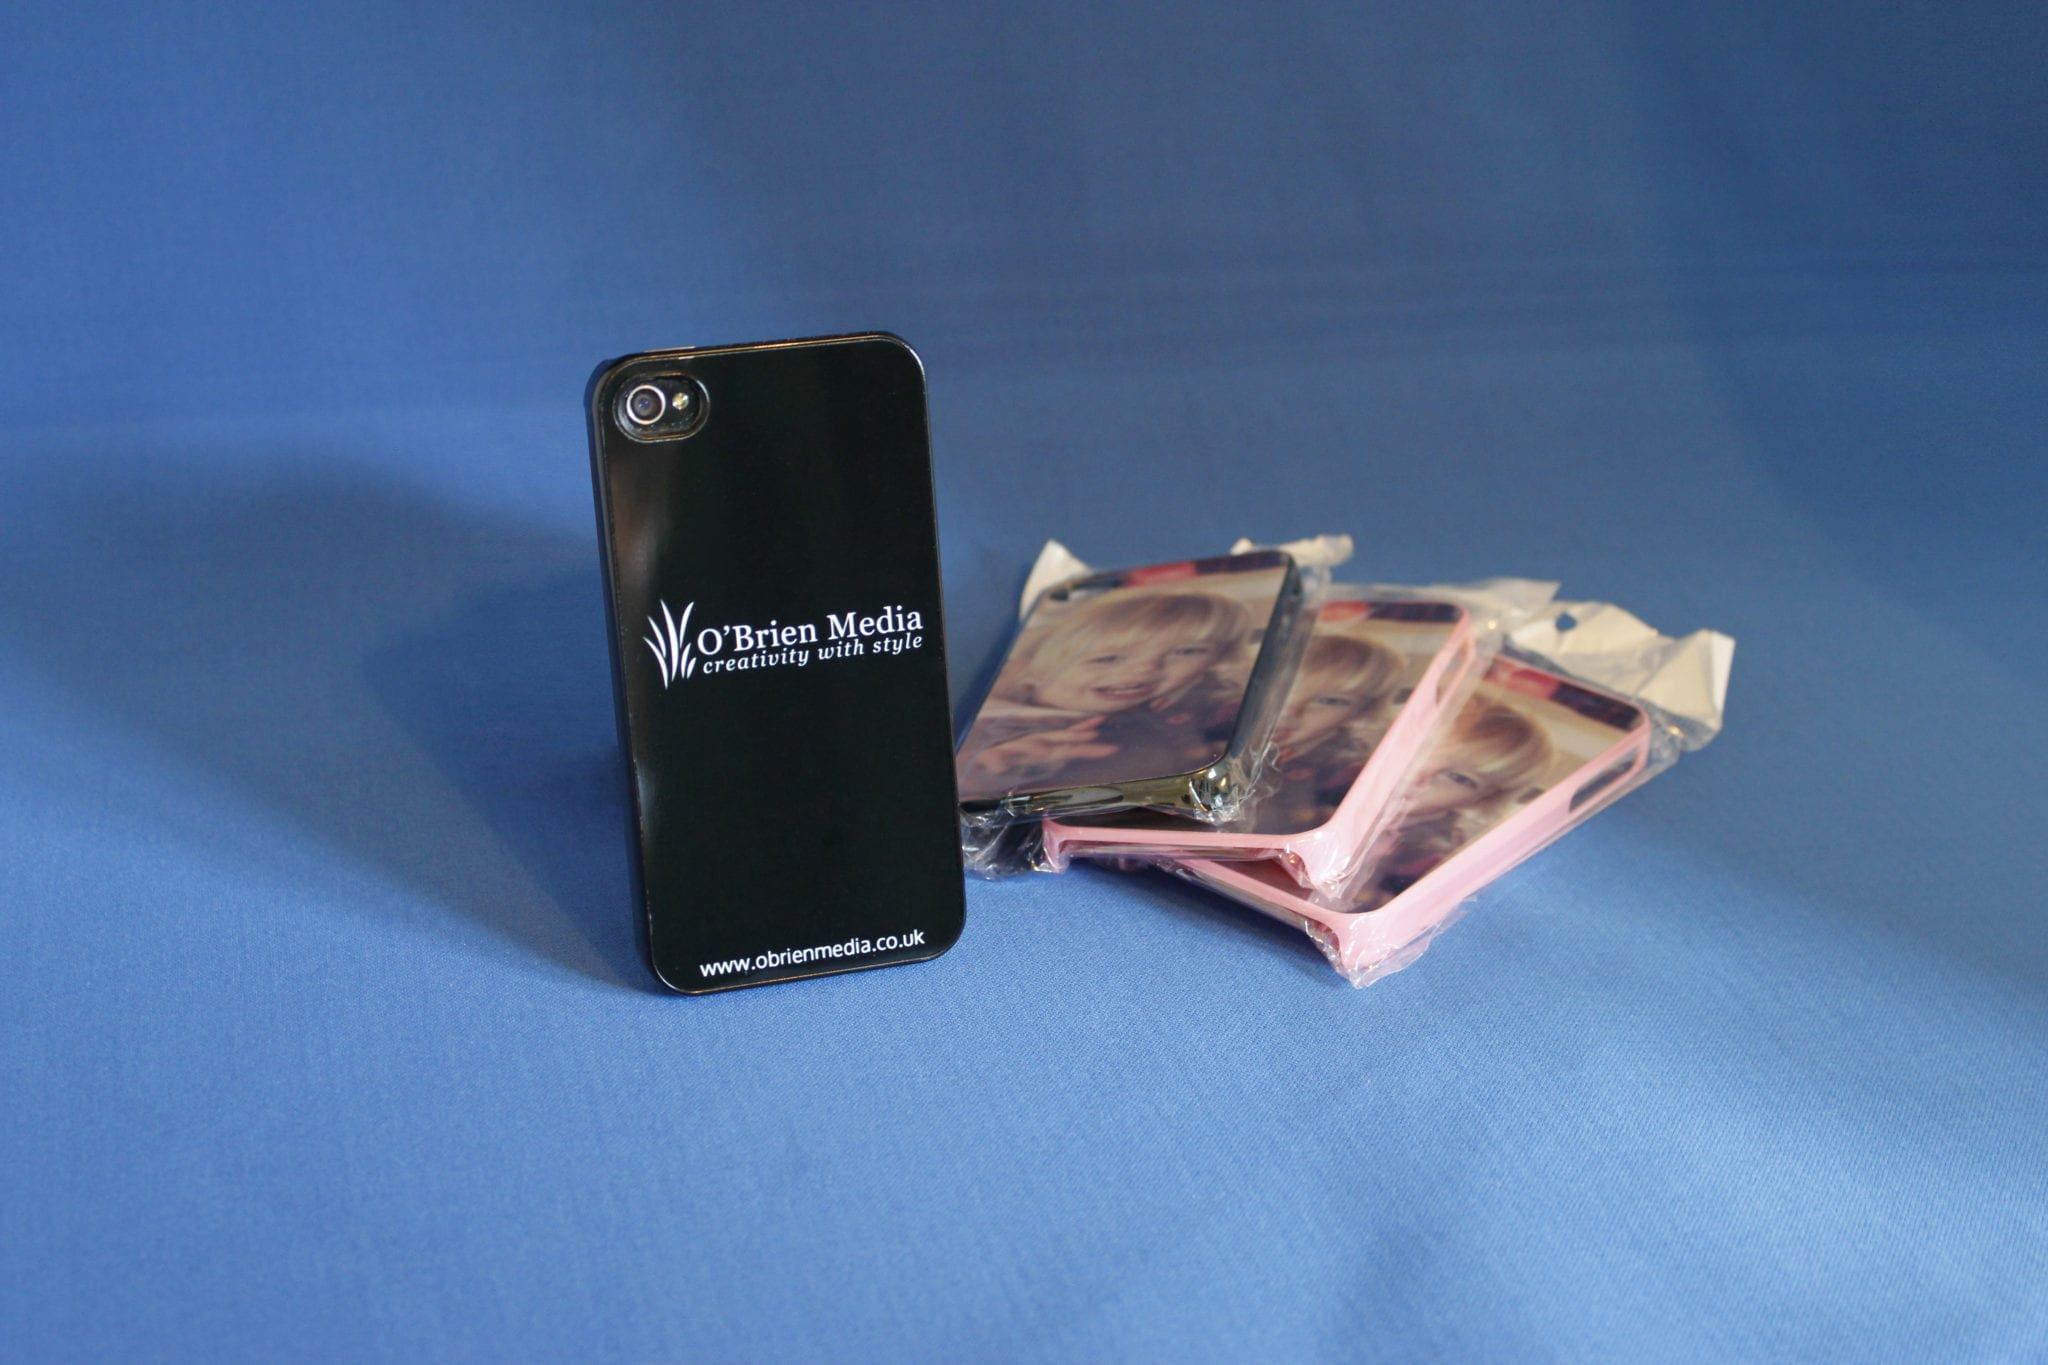 personalised-iphone-cases-are-a-great-way-to-promote-your-business-or-brand.jpg